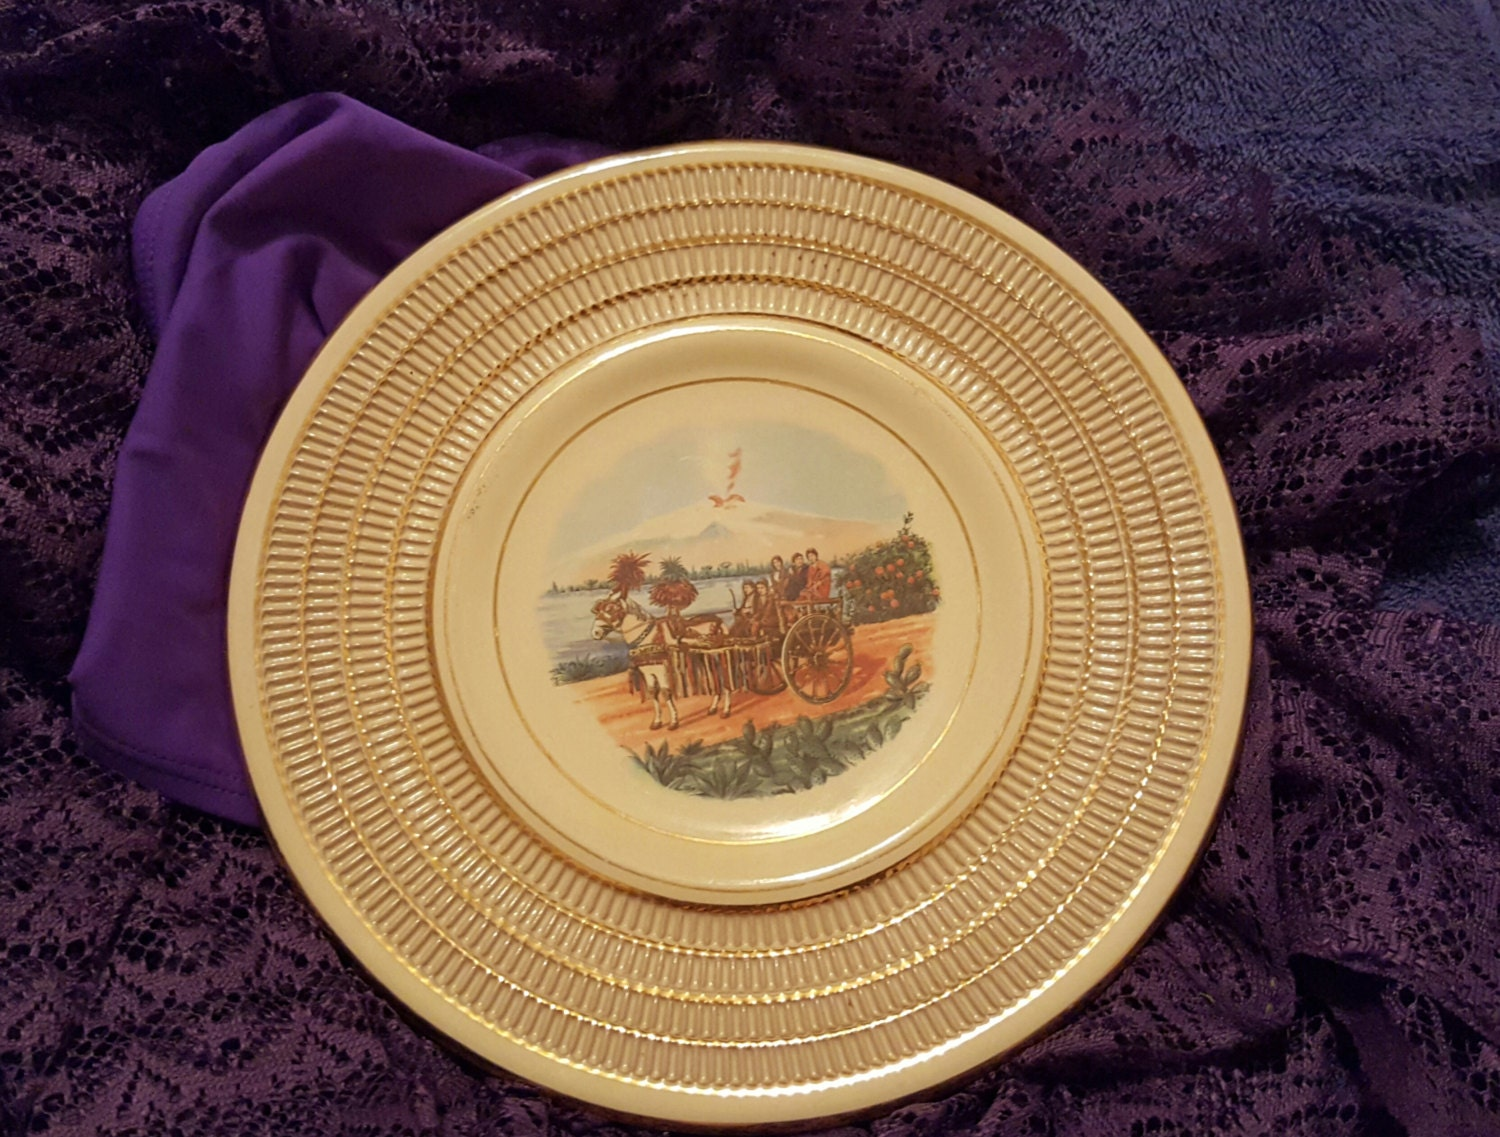 Decorative Wall Plates Italian : Italian decorative wall plate with textured gold ivory rim